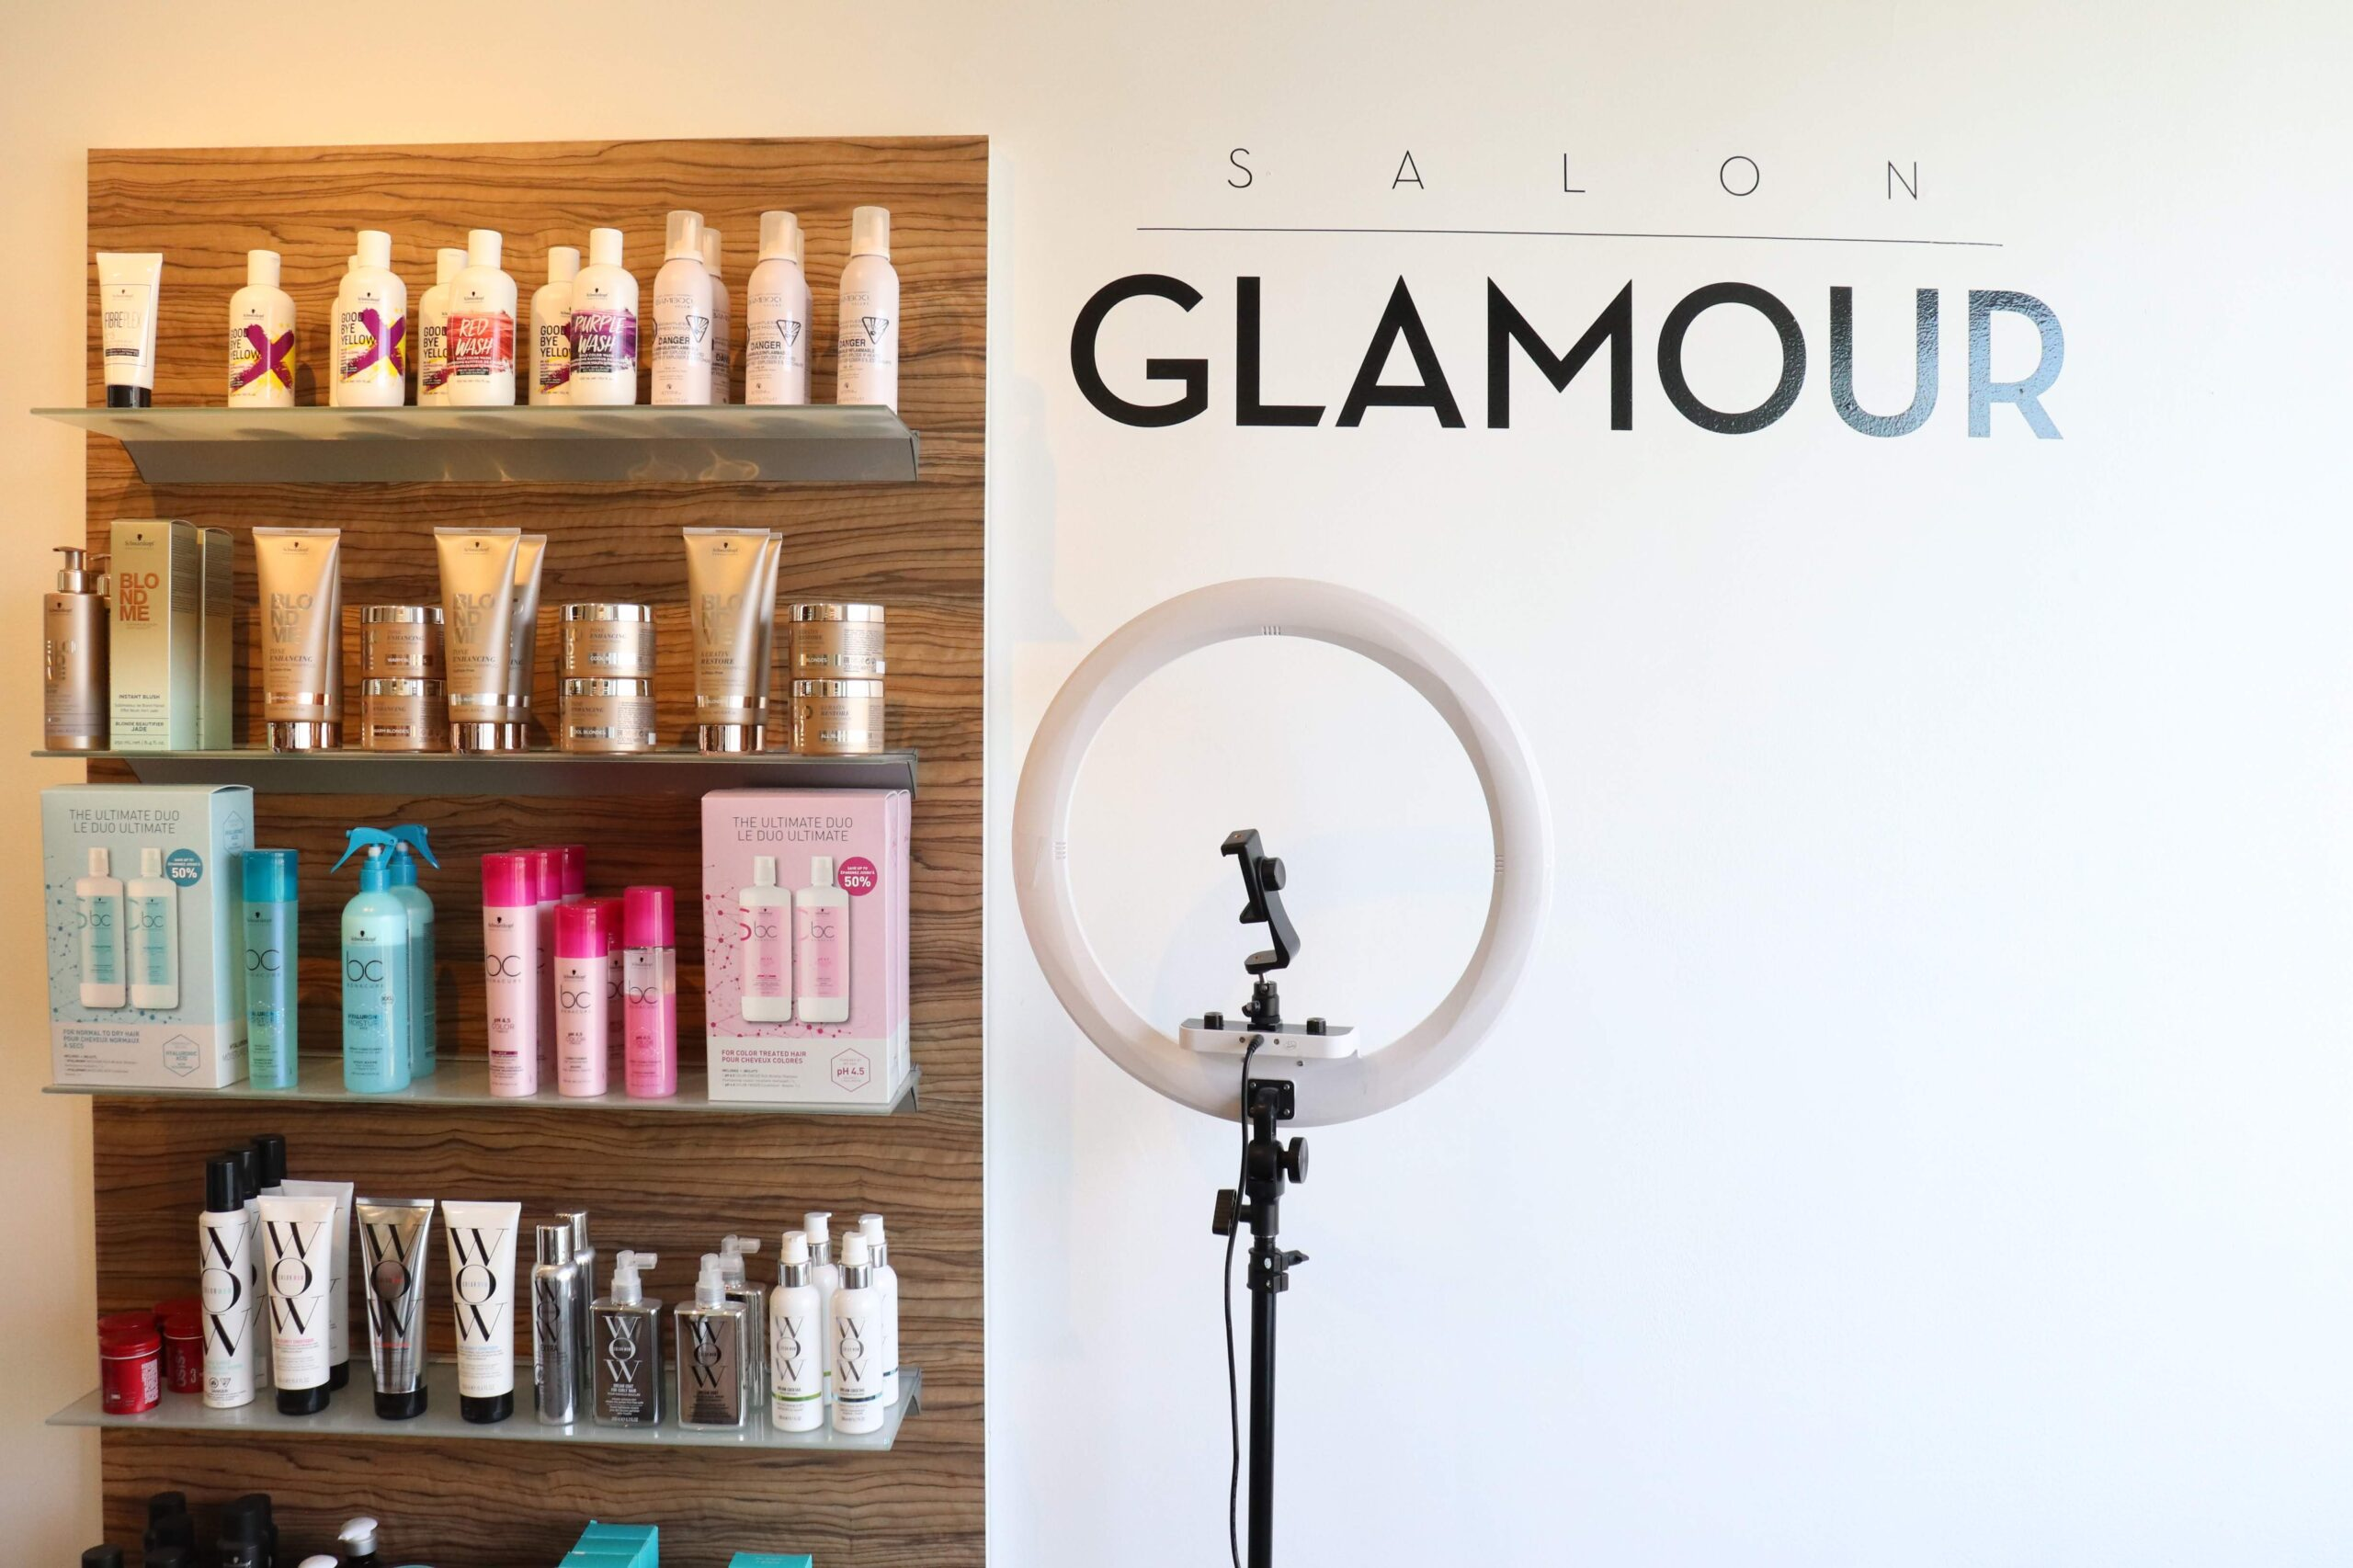 luxury hair care products sit on display shelves in Salon Glamour's Etobicoke salon location